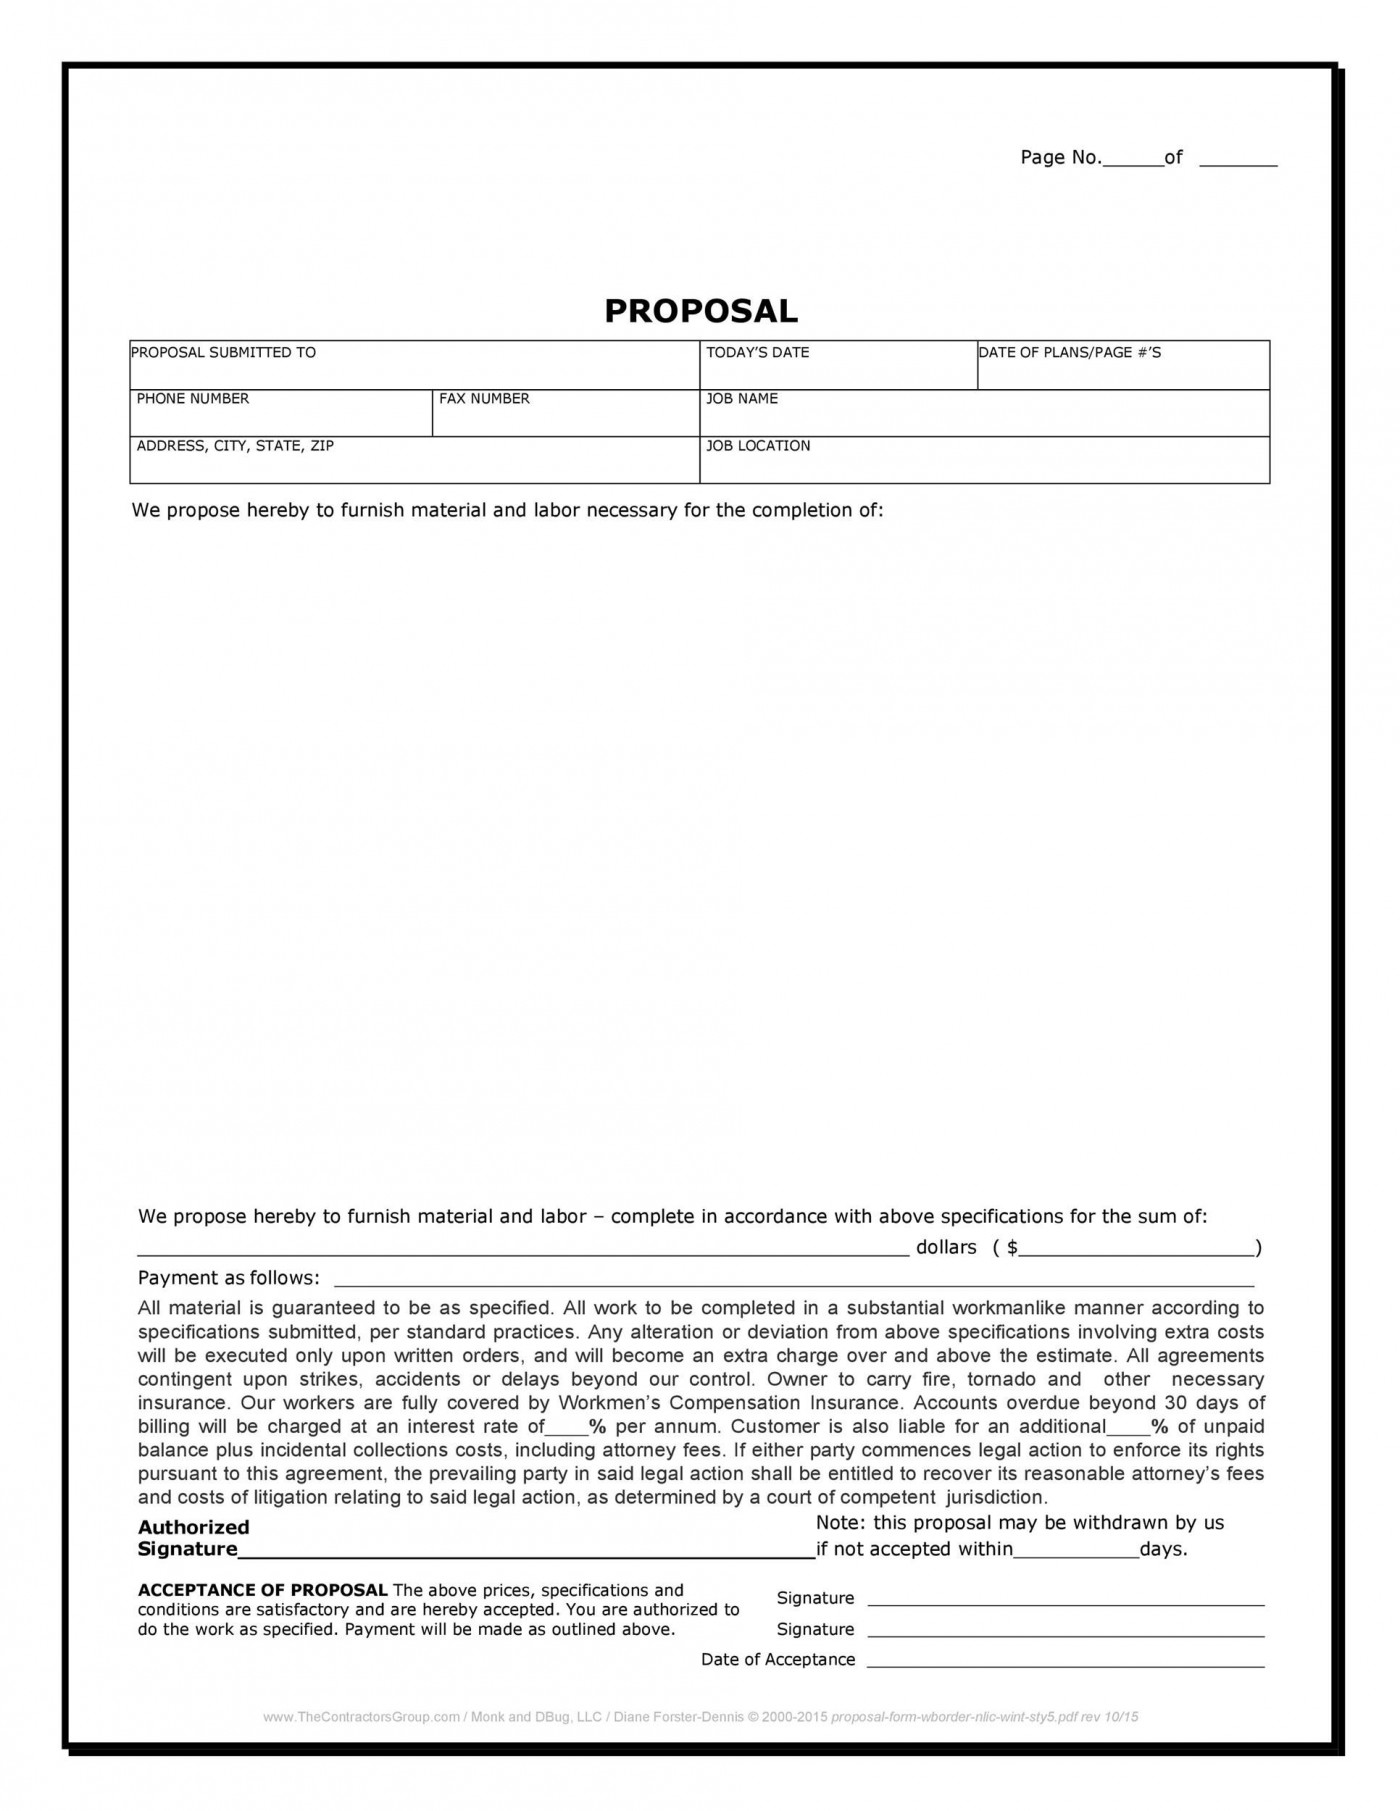 009 Archaicawful Construction Job Proposal Template Design  Example1400